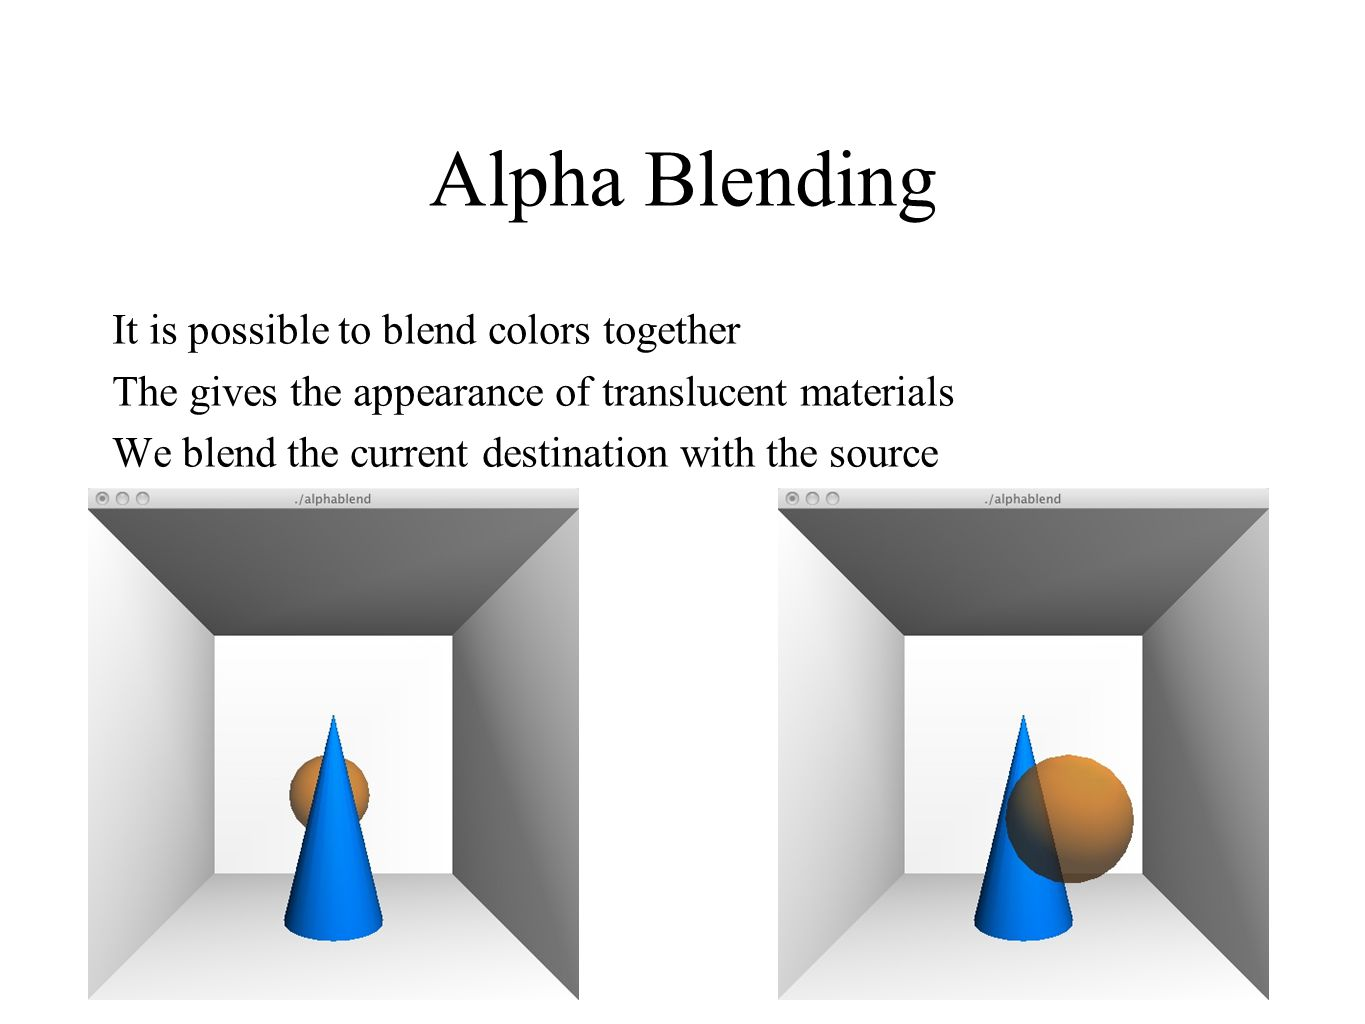 14 Alpha Blending It is possible to blend colors together The gives the appearance of translucent materials We blend the current destination with the